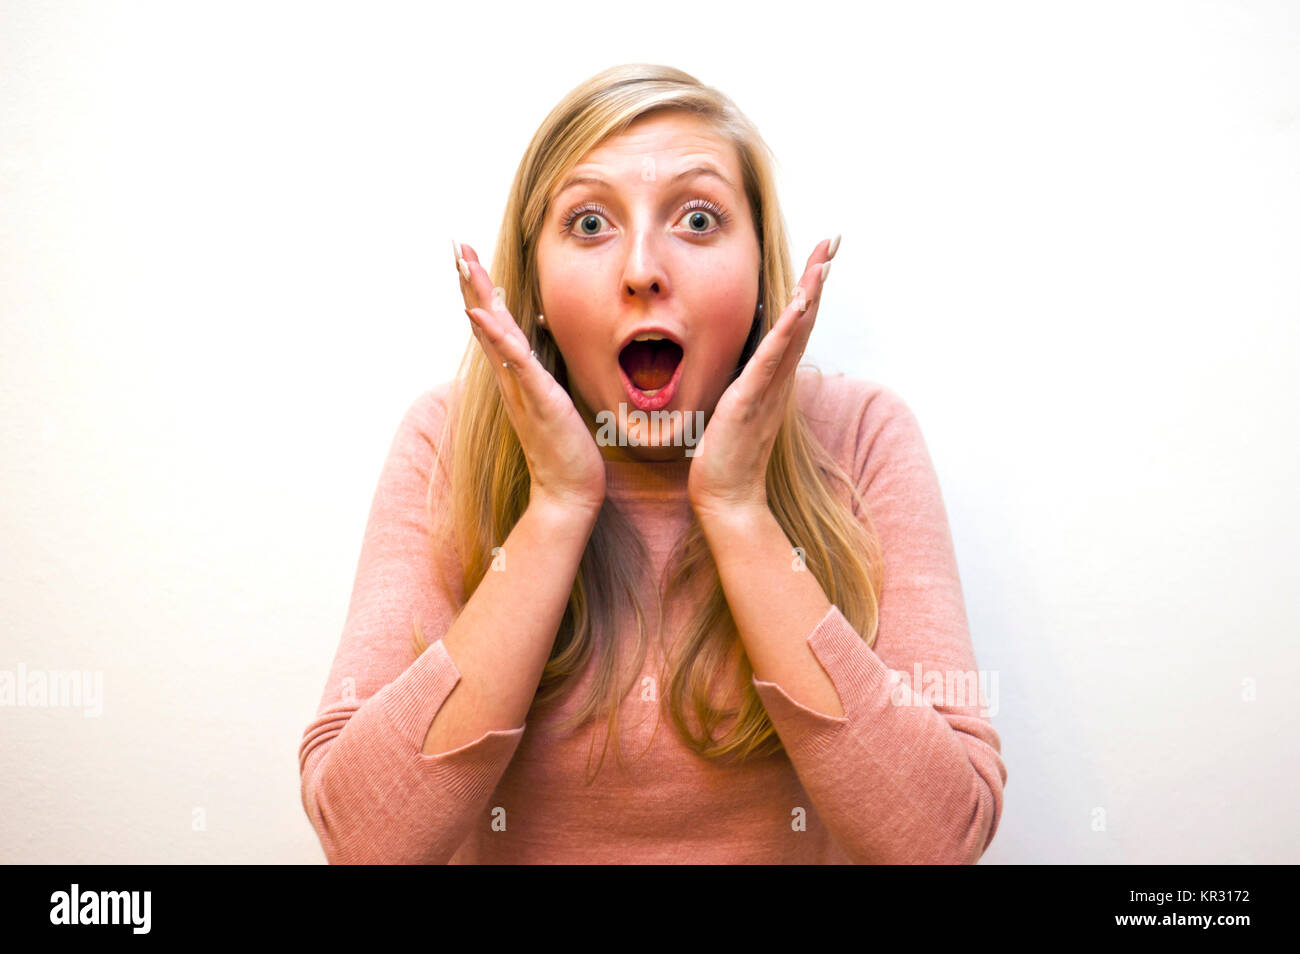 blond Caucasian girl with an expression of marvel and surprise - Stock Image